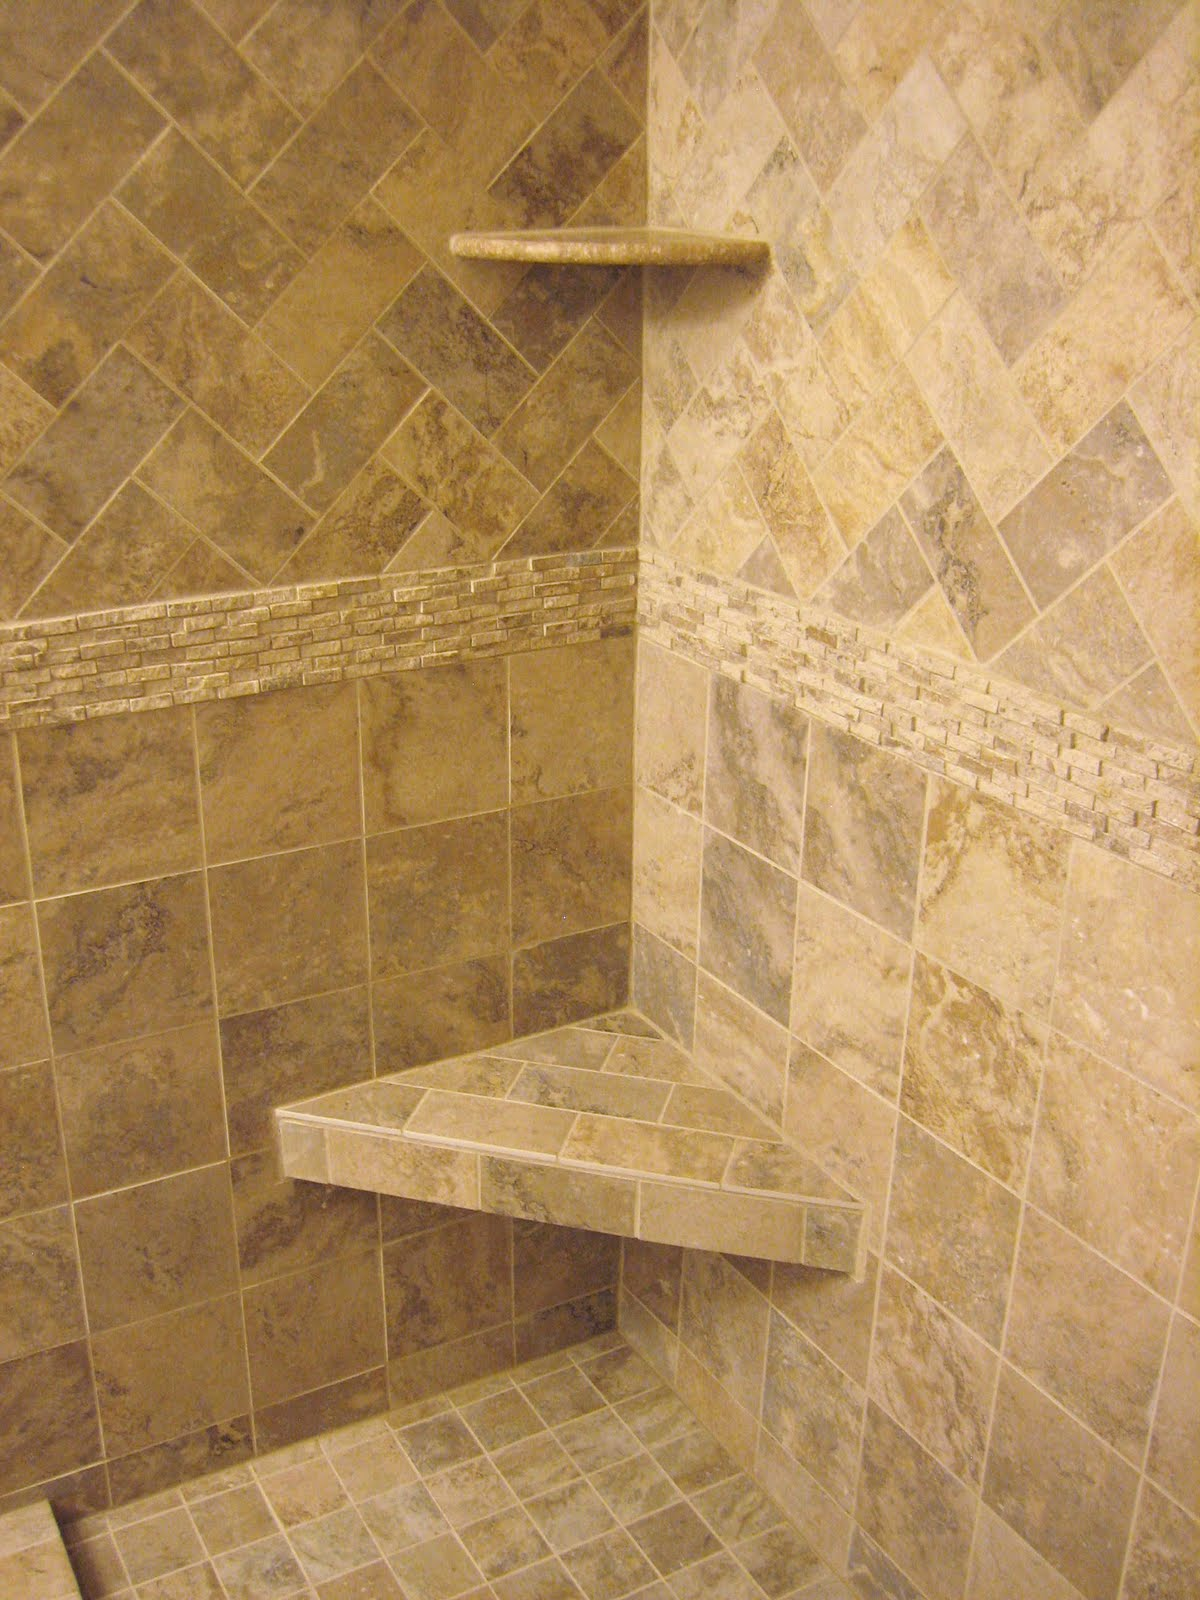 Shower Tile Ideas Designs beautiful modern bathroom shower tile ideas with small home remodel ideas with modern bathroom shower tile Comfortable Shower Tile Design Ideas